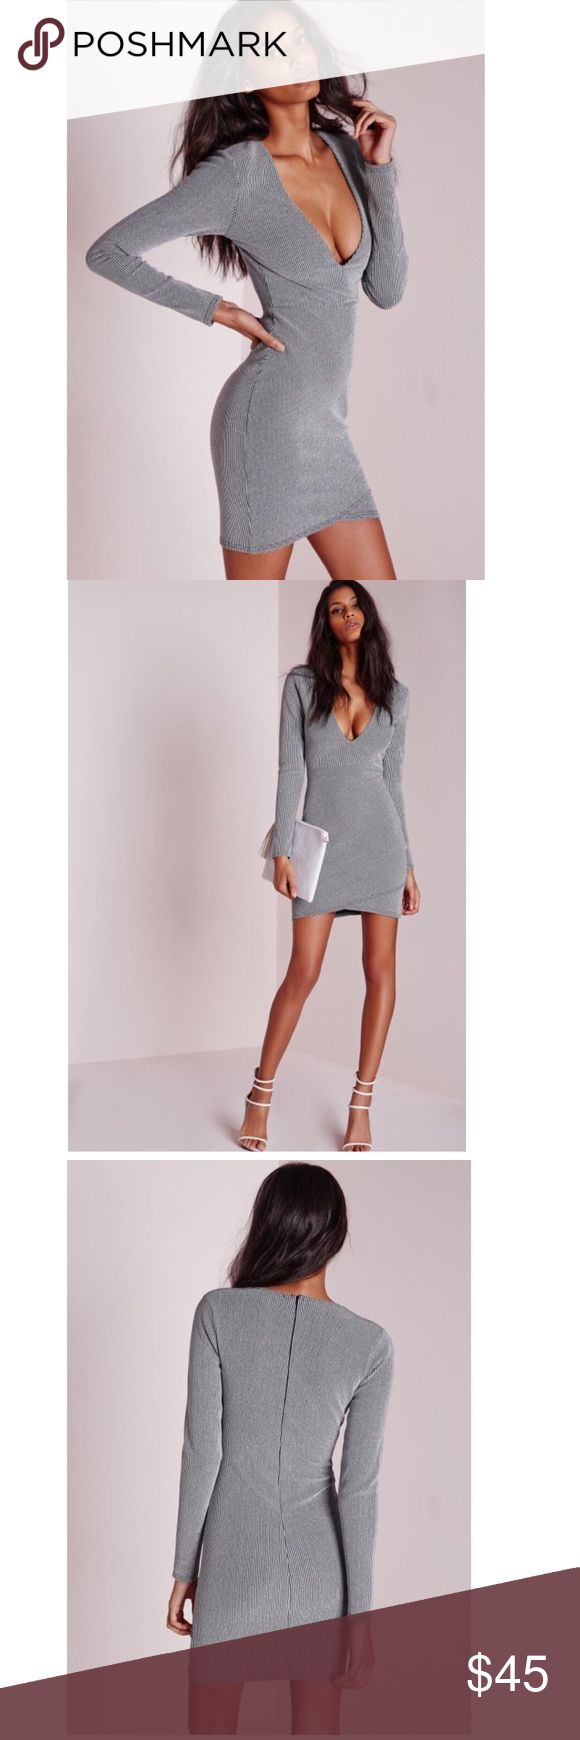 NWT Missguided bodycon dress BRAND NEW, never worn, with tags, silver bodycon dress Missguided Dresses Midi